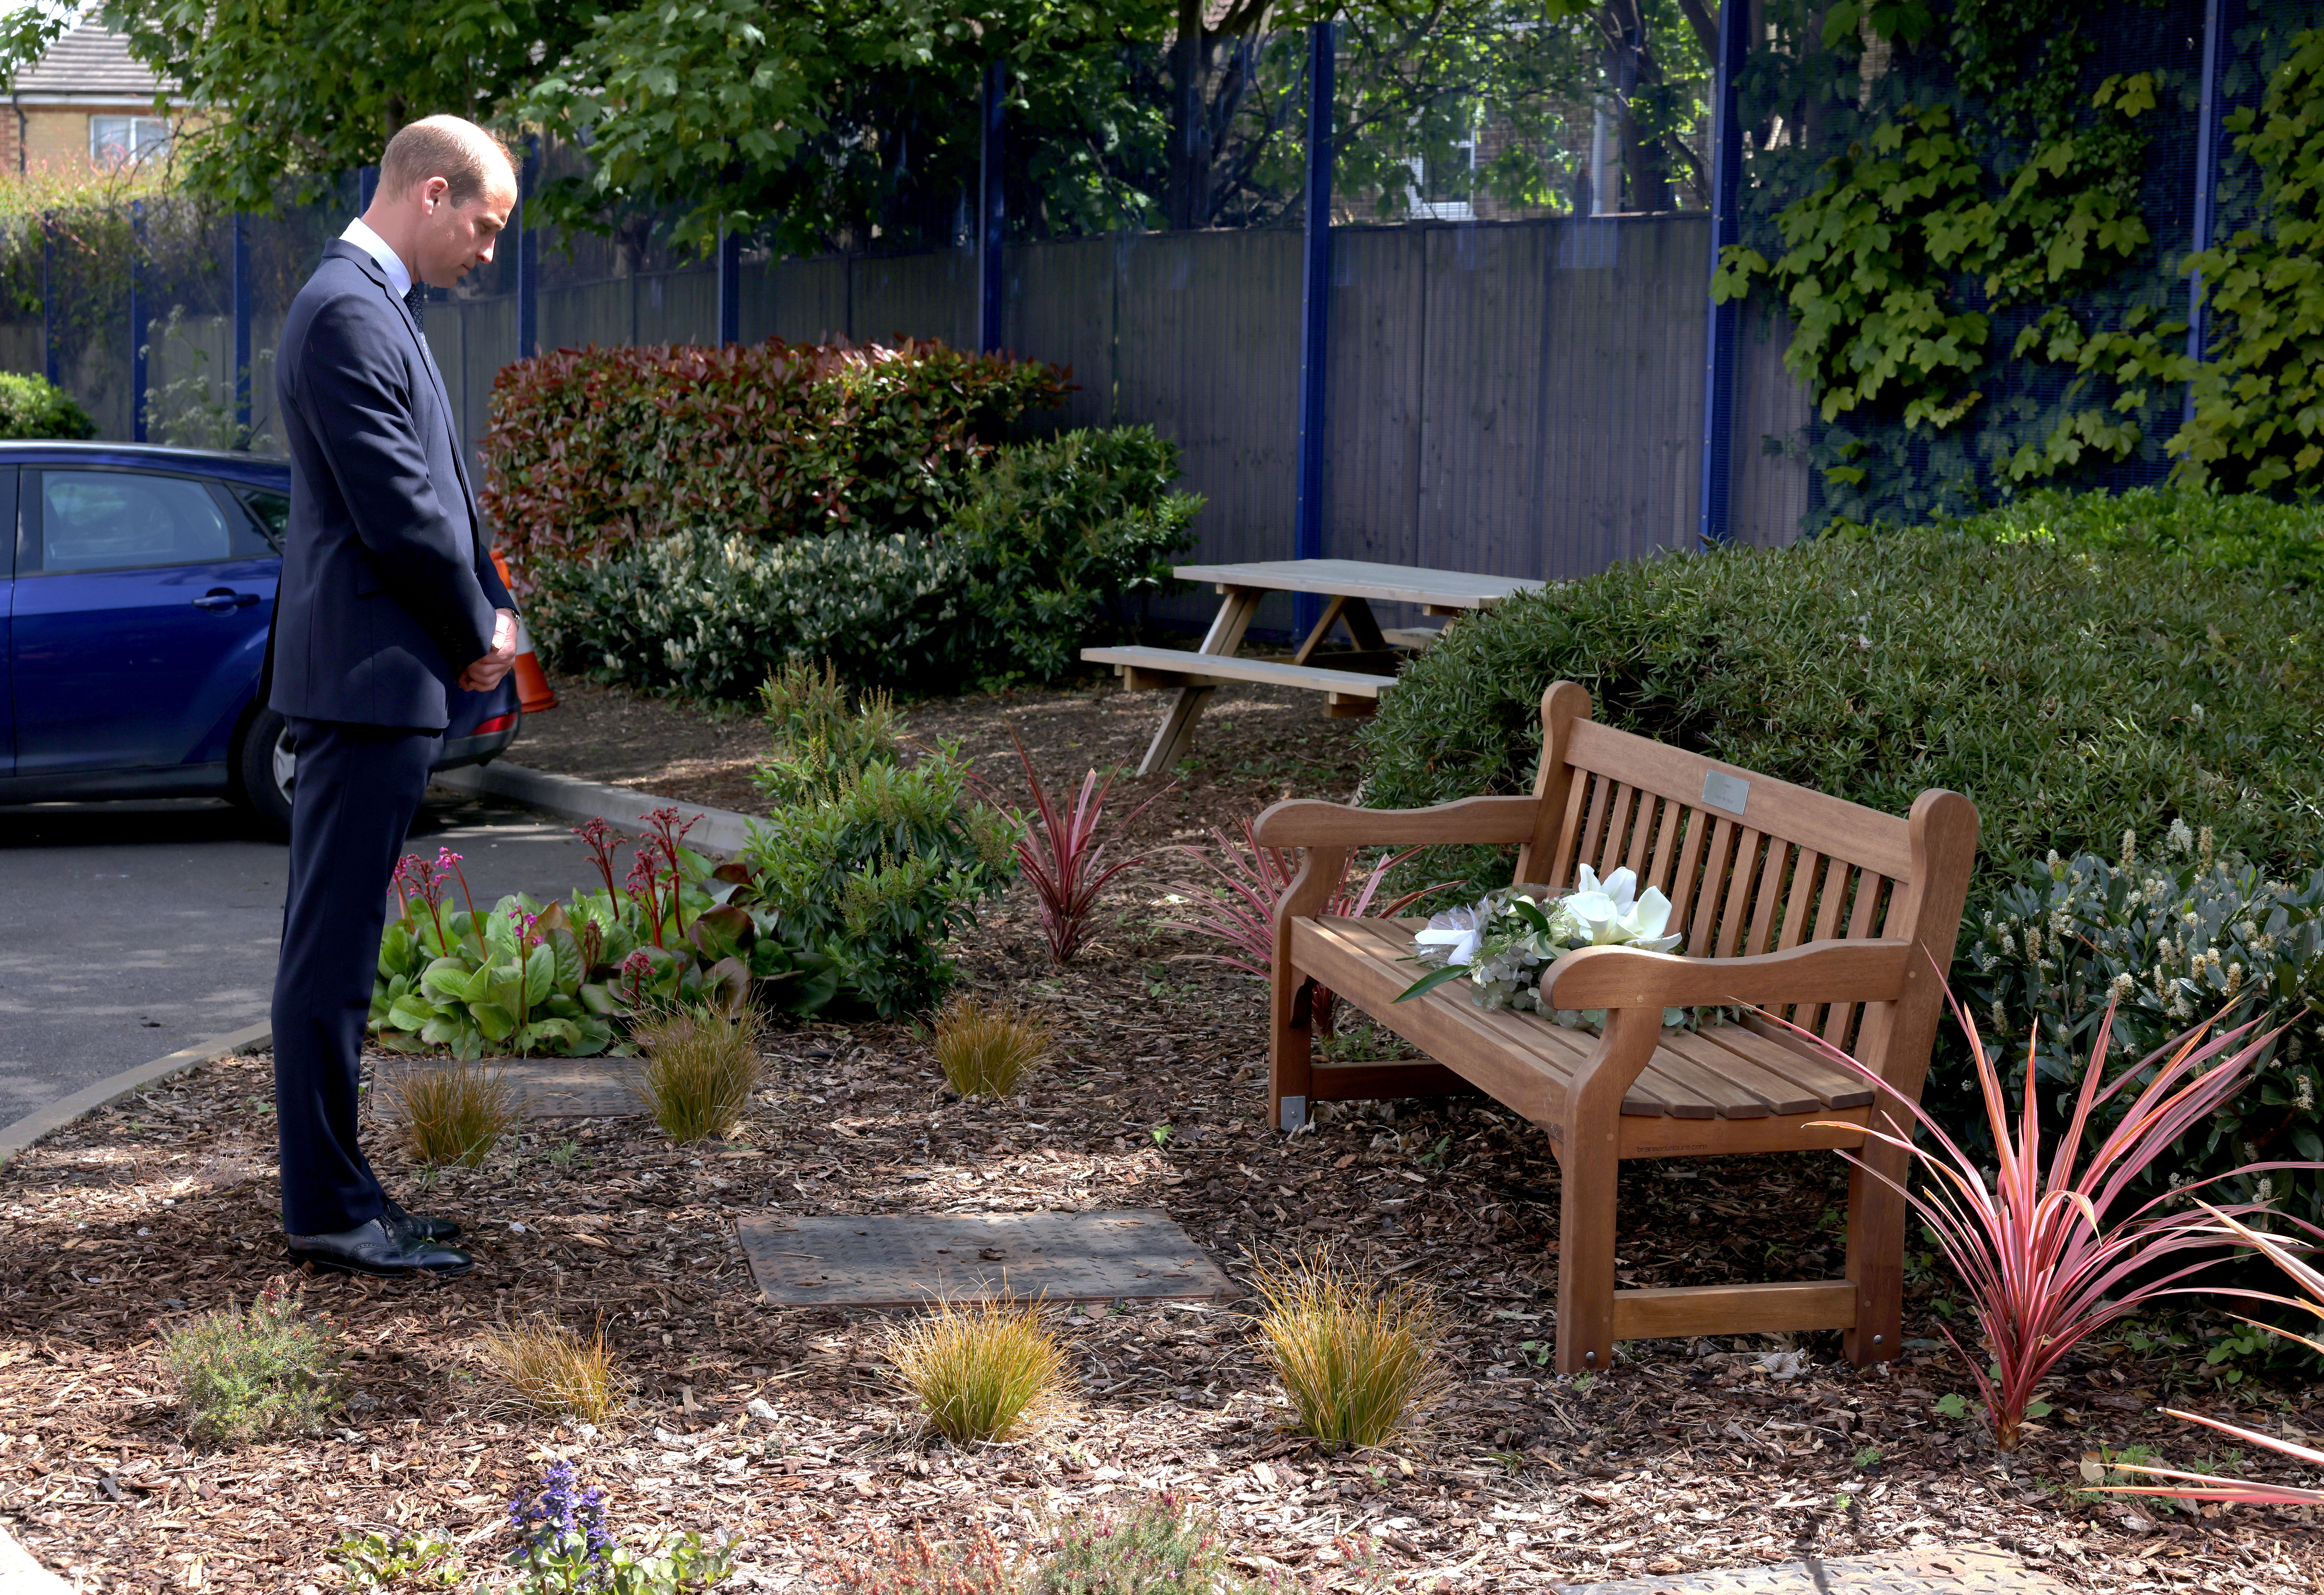 <p>The Duke of Cambridge lays a wreath in memory of Sergeant Matt Ratana, who was killed in the line of duty, during a visit to Croydon Custody Centre. Picture date: Wednesday May 12, 2021.</p>